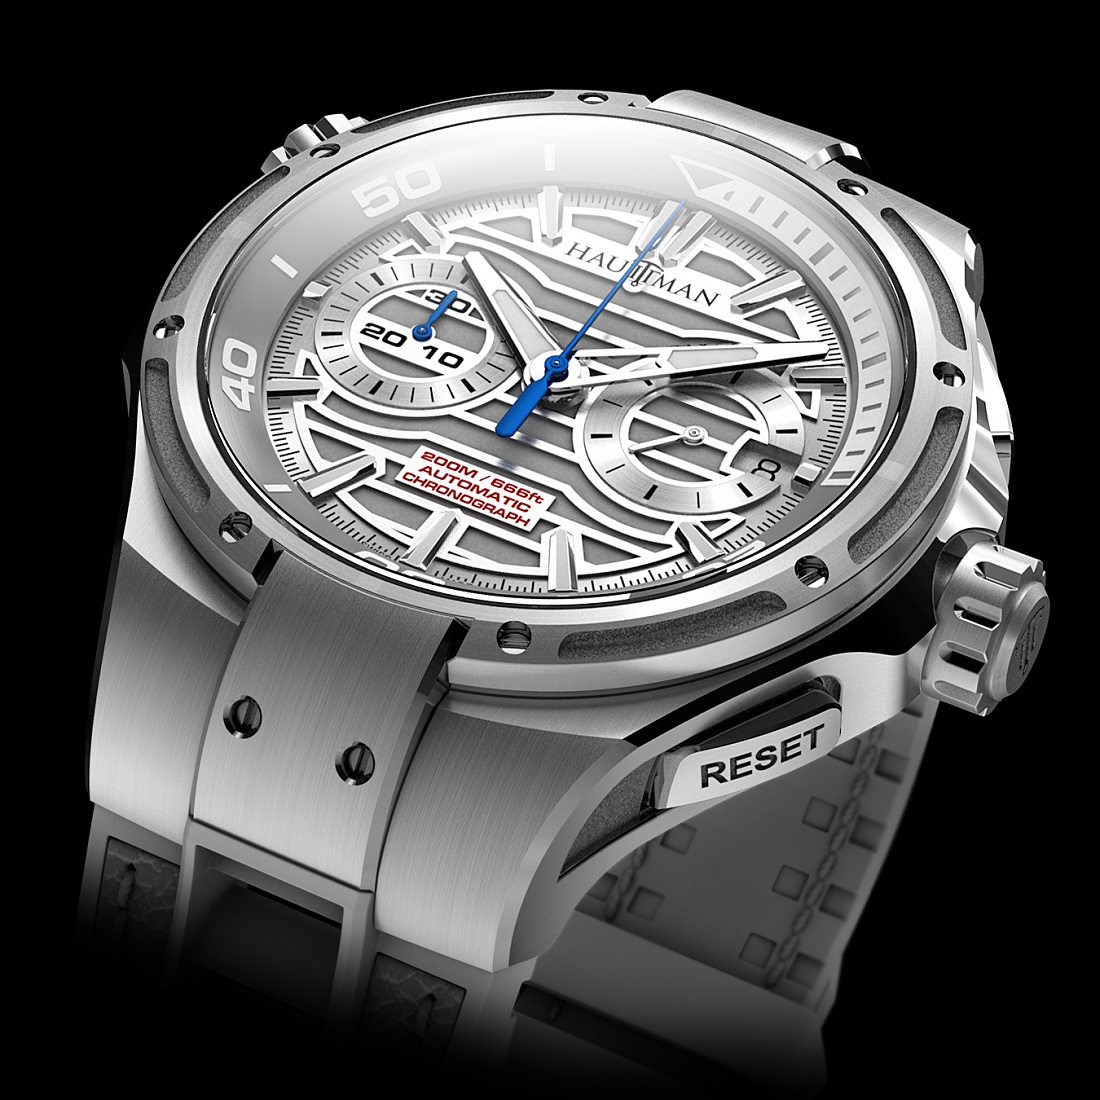 LuxuryHauttman Deep Discovery Chronograph Limited Edition Replica Watches